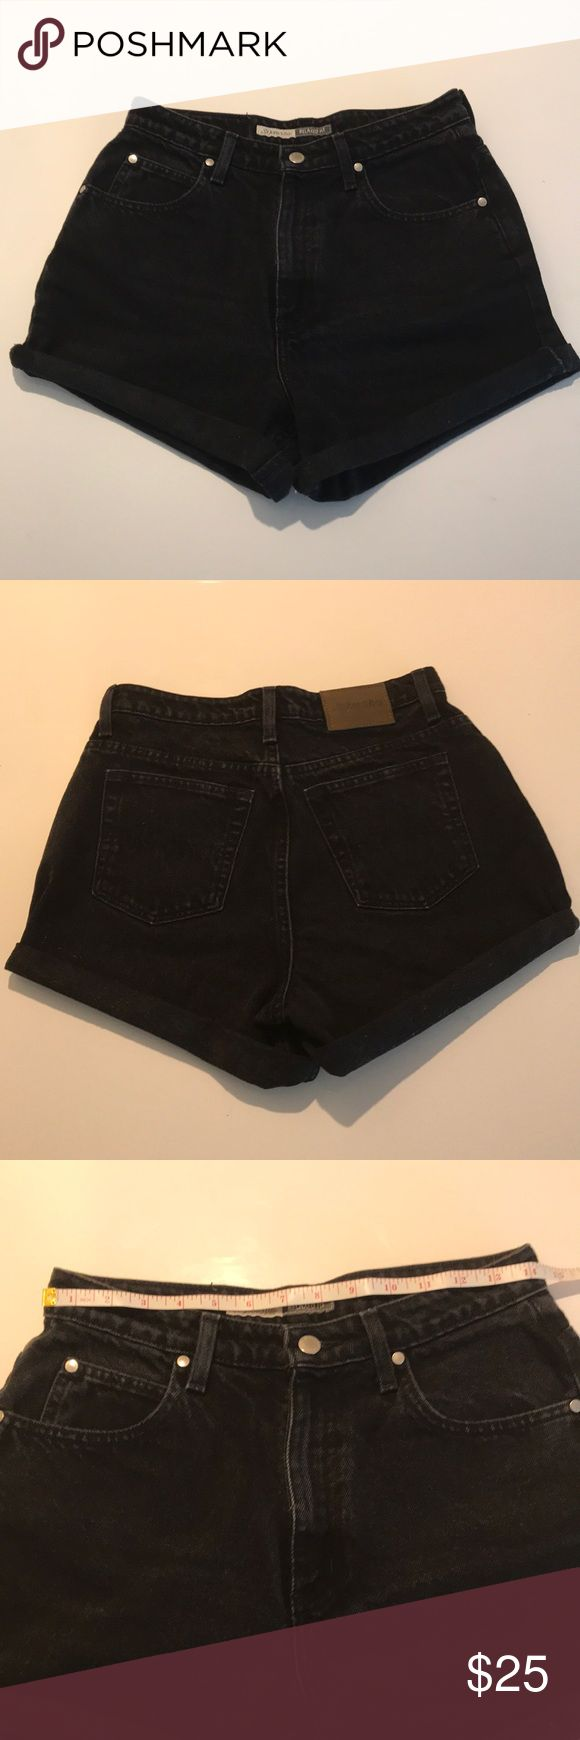 """Vintage cut off shorts True vintage jeans! These """"Mom"""" shorts are high waisted and relaxed through hip and thigh. See pics for measurements. Can be worn cuffed or unrolled with a frayed hem. (Inseam app. 3.5"""" when unrolled). These are vintage, so there may be some fading, fraying, etc. which is part of the vintage look. Shorts"""